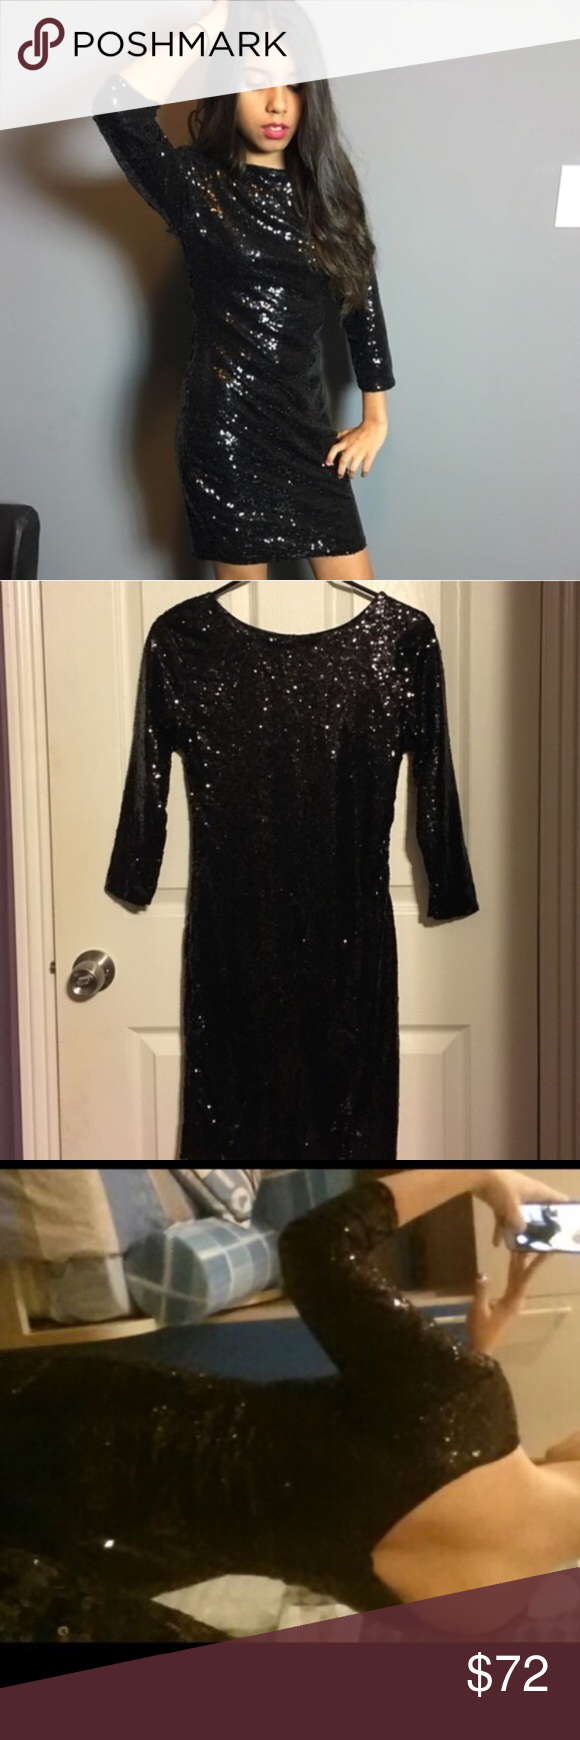 Sexy black sequined dress boutique pinterest sequins and